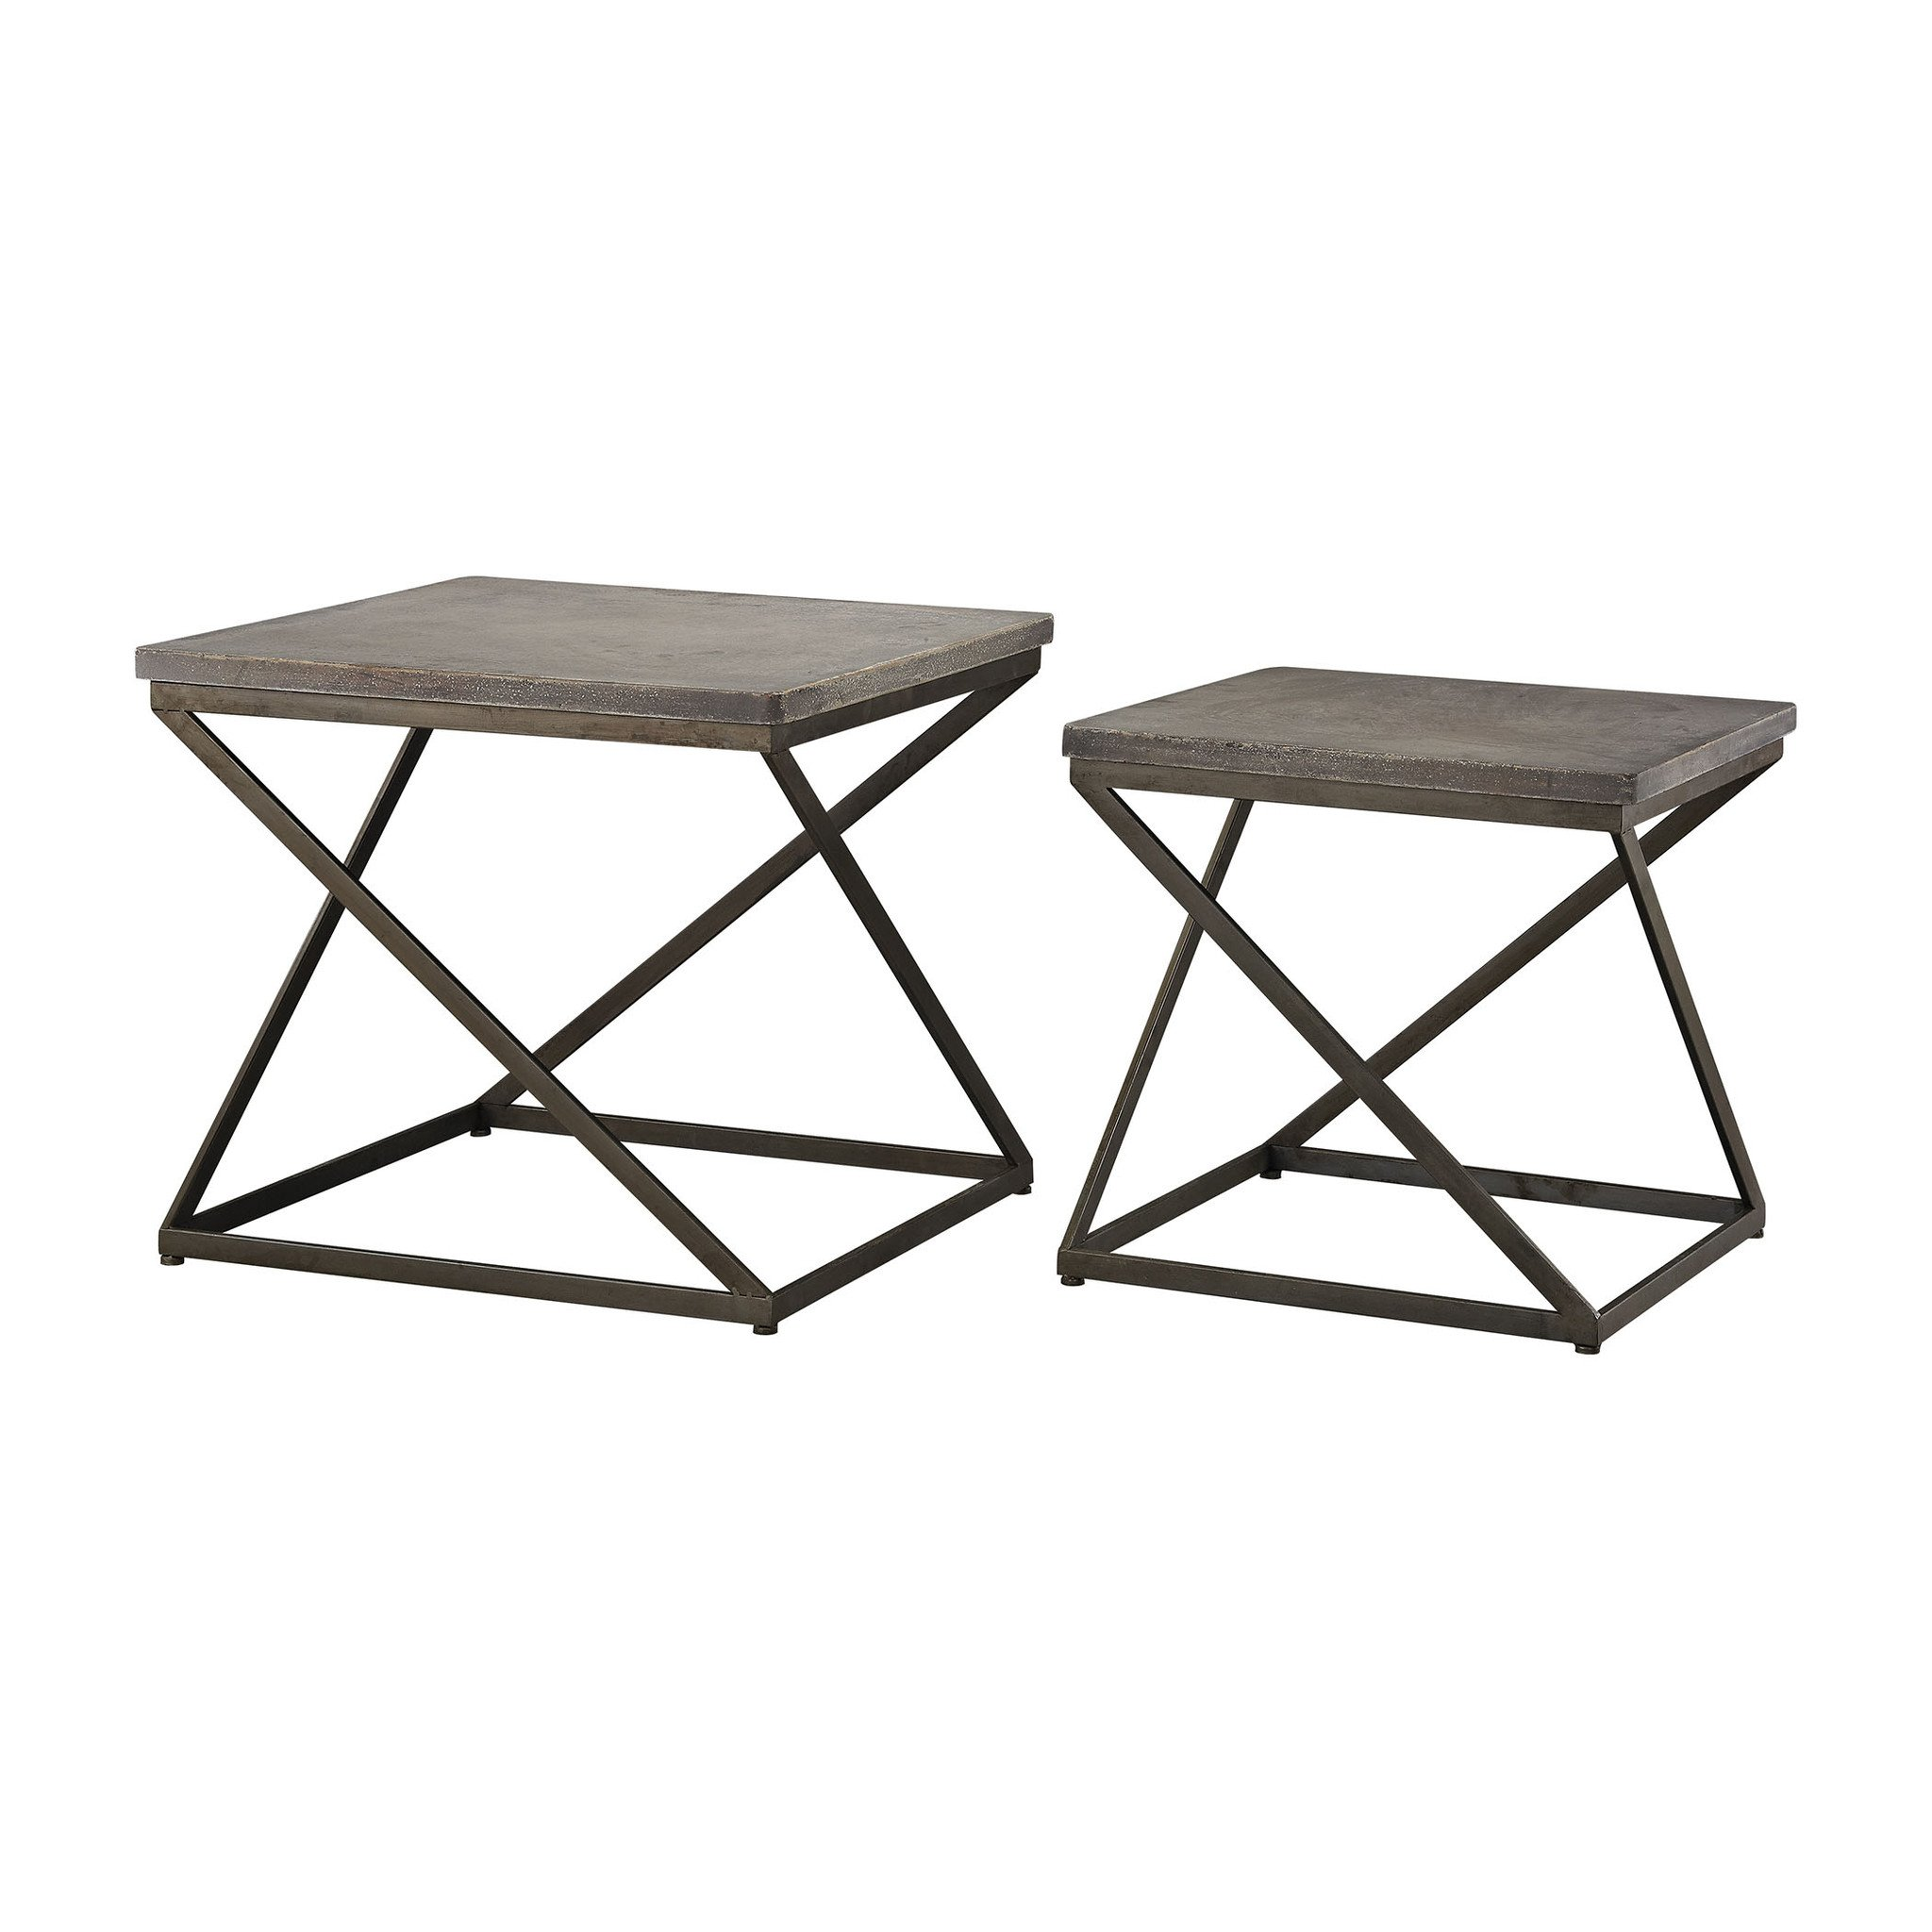 sterling moya aged iron accent tables concrete table set free runner patterns garden stool outdoor coffee with umbrella west elm shades commercial nic narrow gold console glass